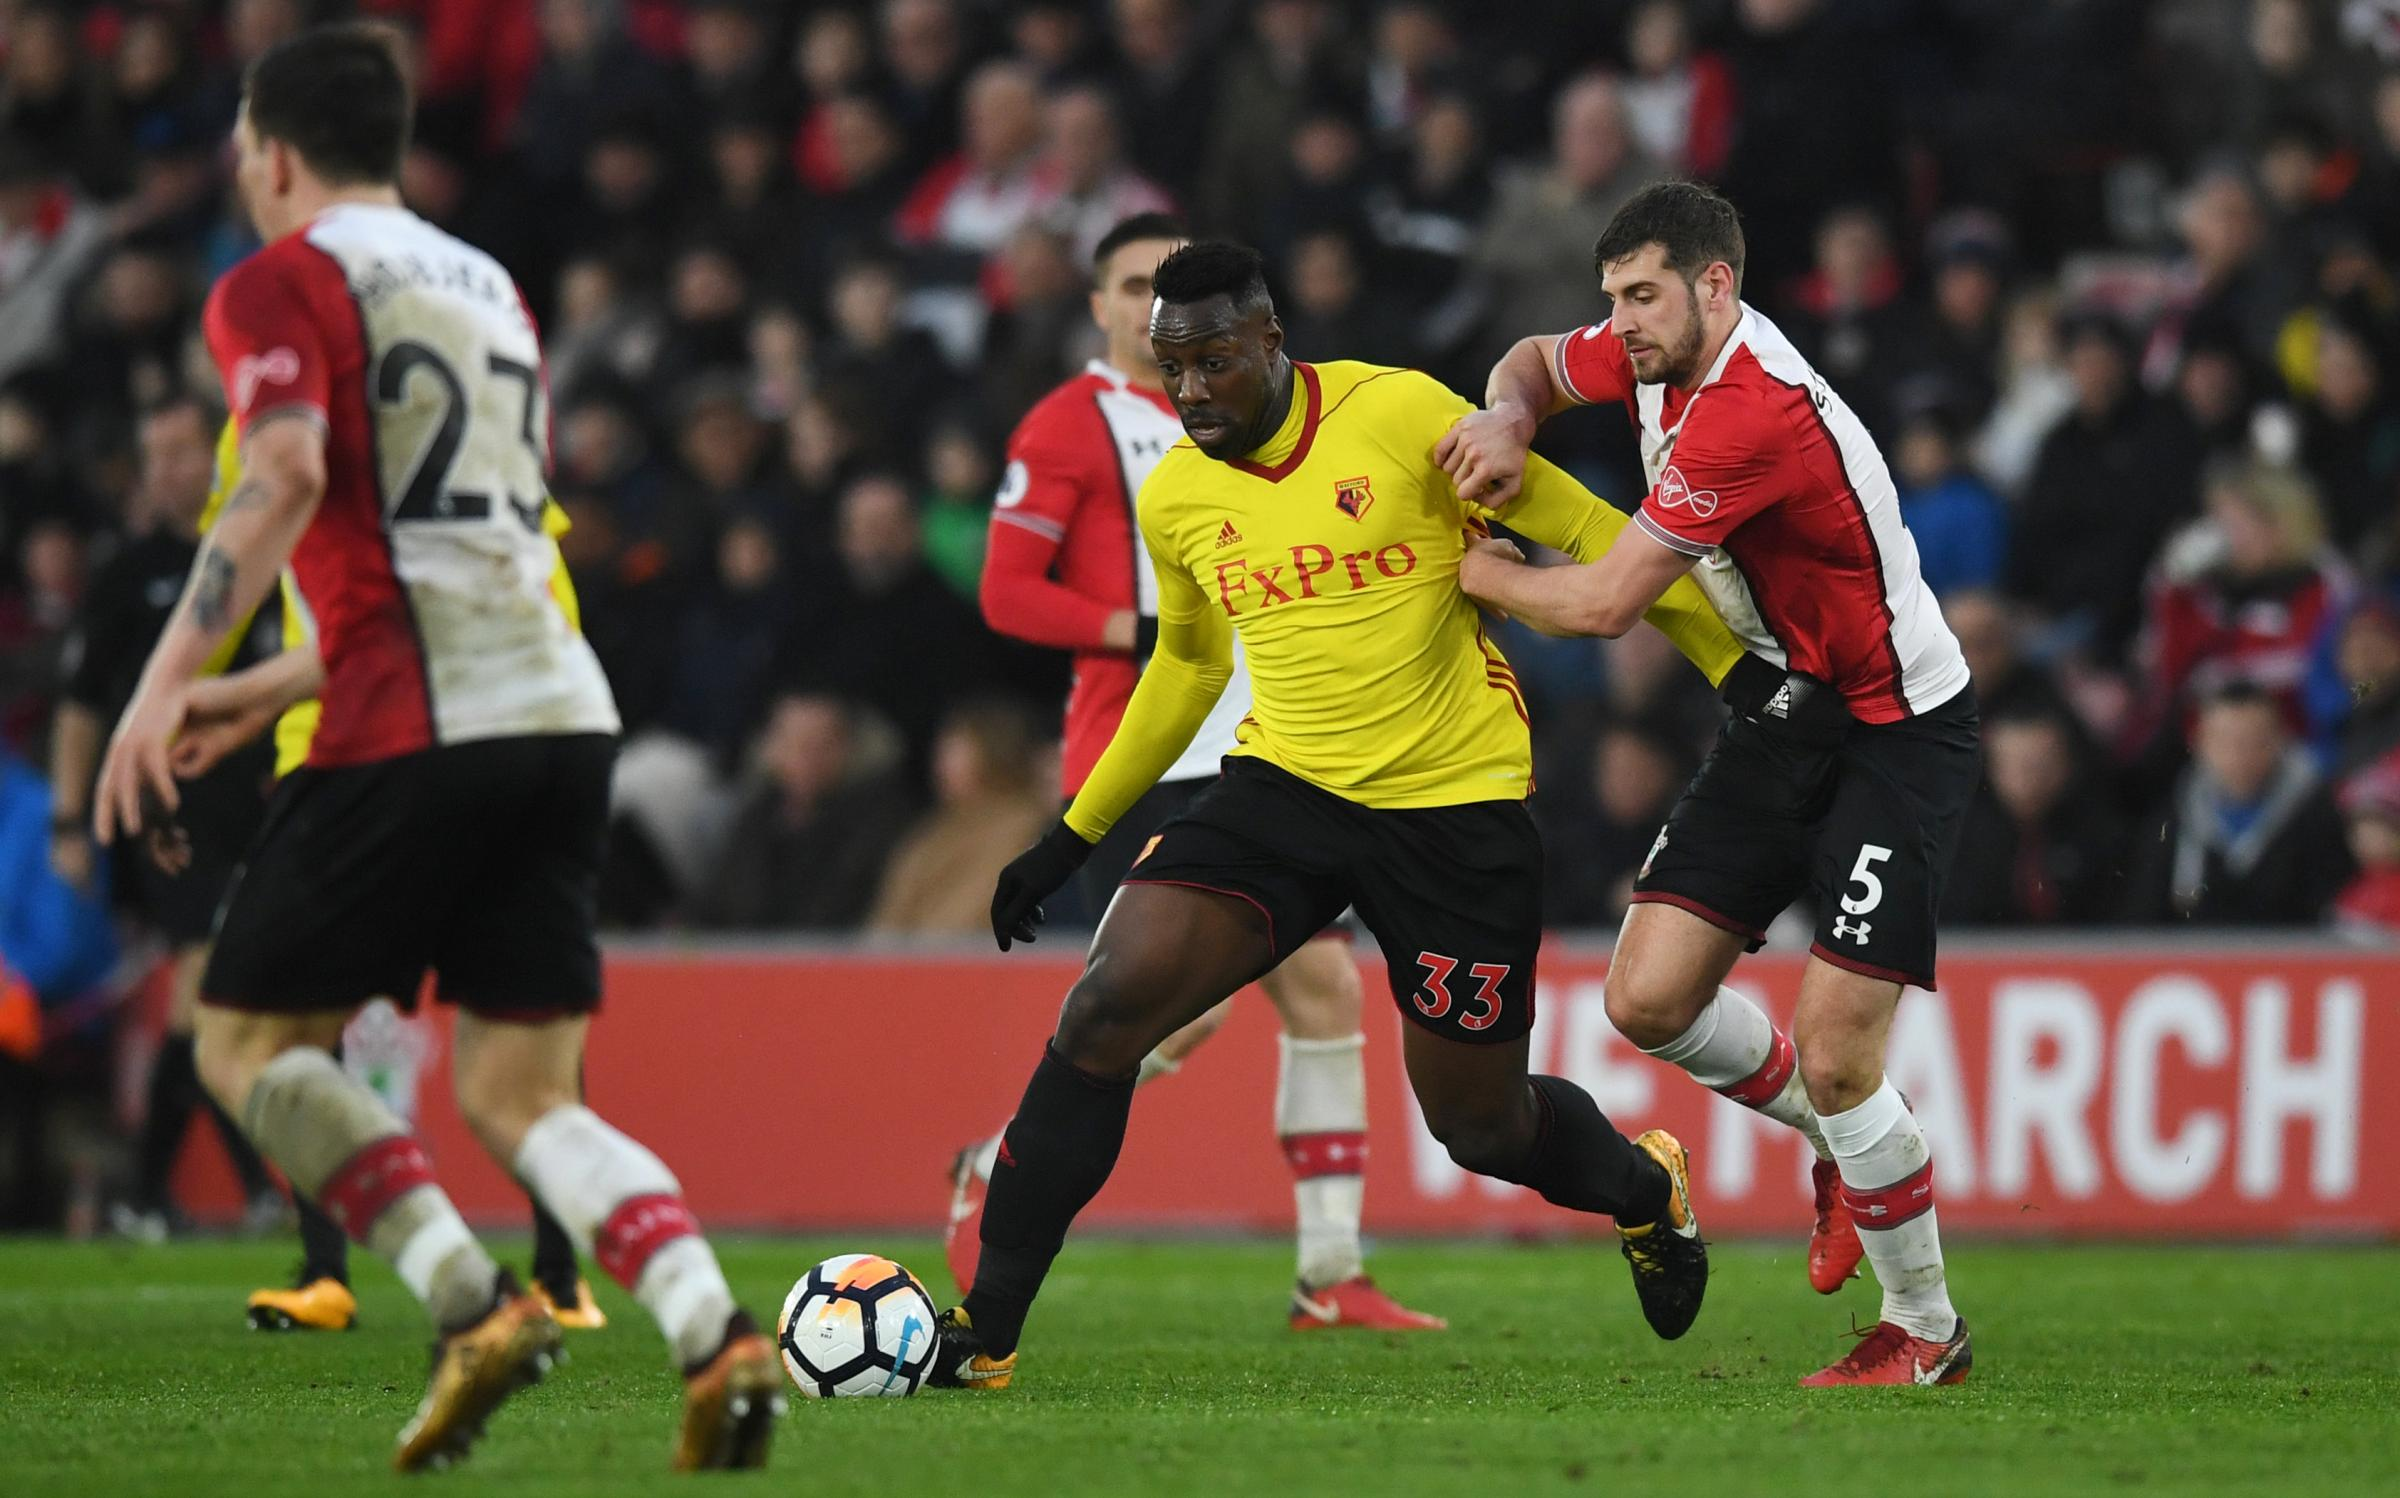 Stefano Okaka looked to leave Watford in January after falling out of favour. Picture: Action Images